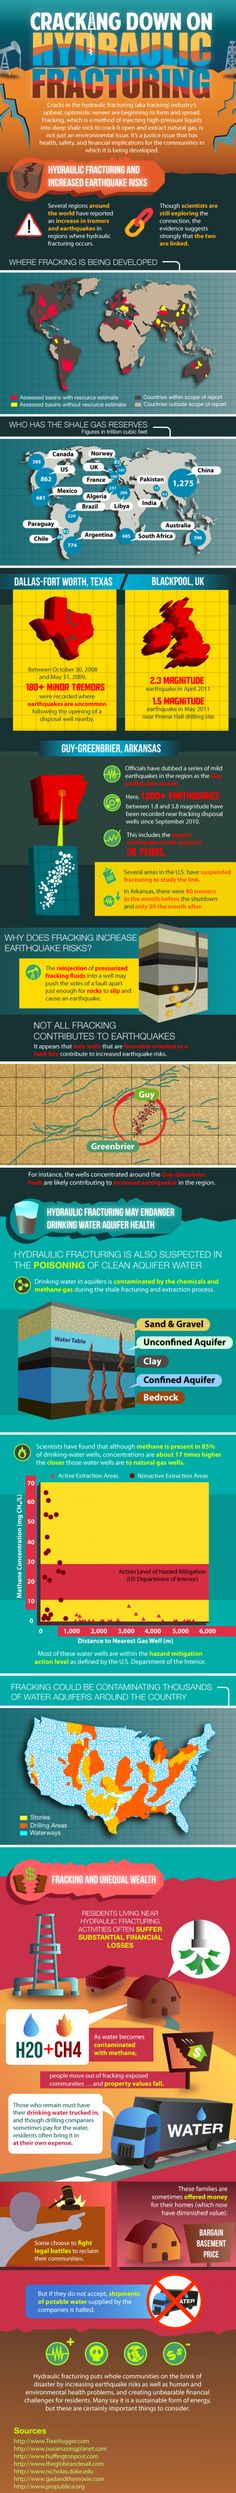 Because Oklahoma had a series of minor earthquakes yesterday, I found this page connecting #earthquakes with #FRACKING - #infographic colors!